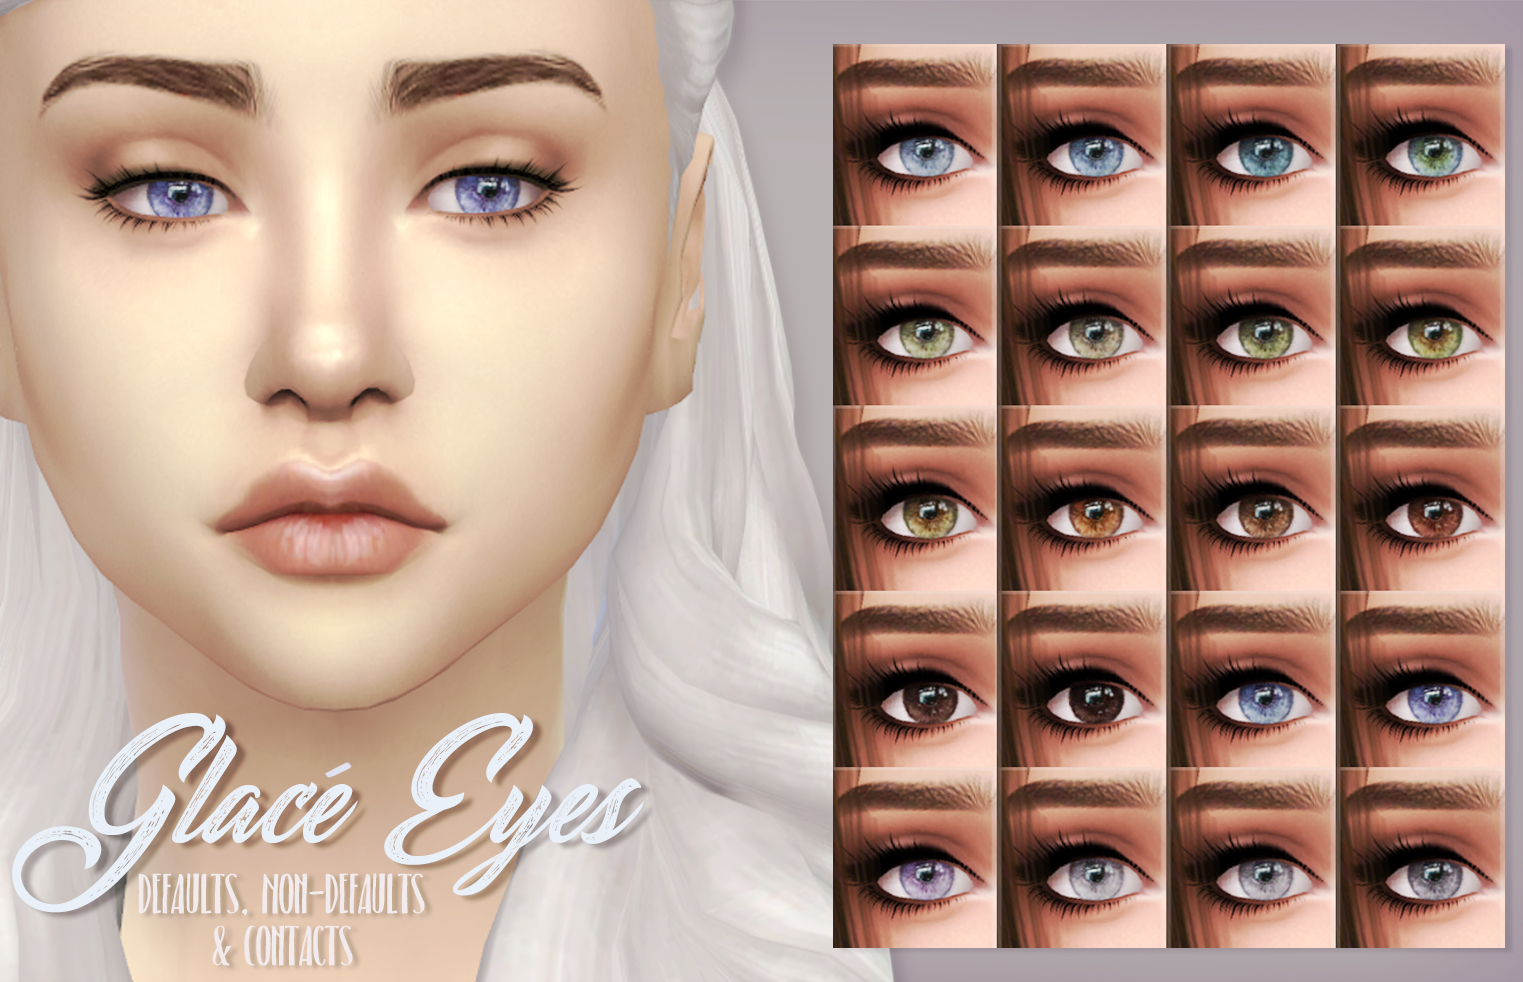 Mod The Sims - Glacé Eyes